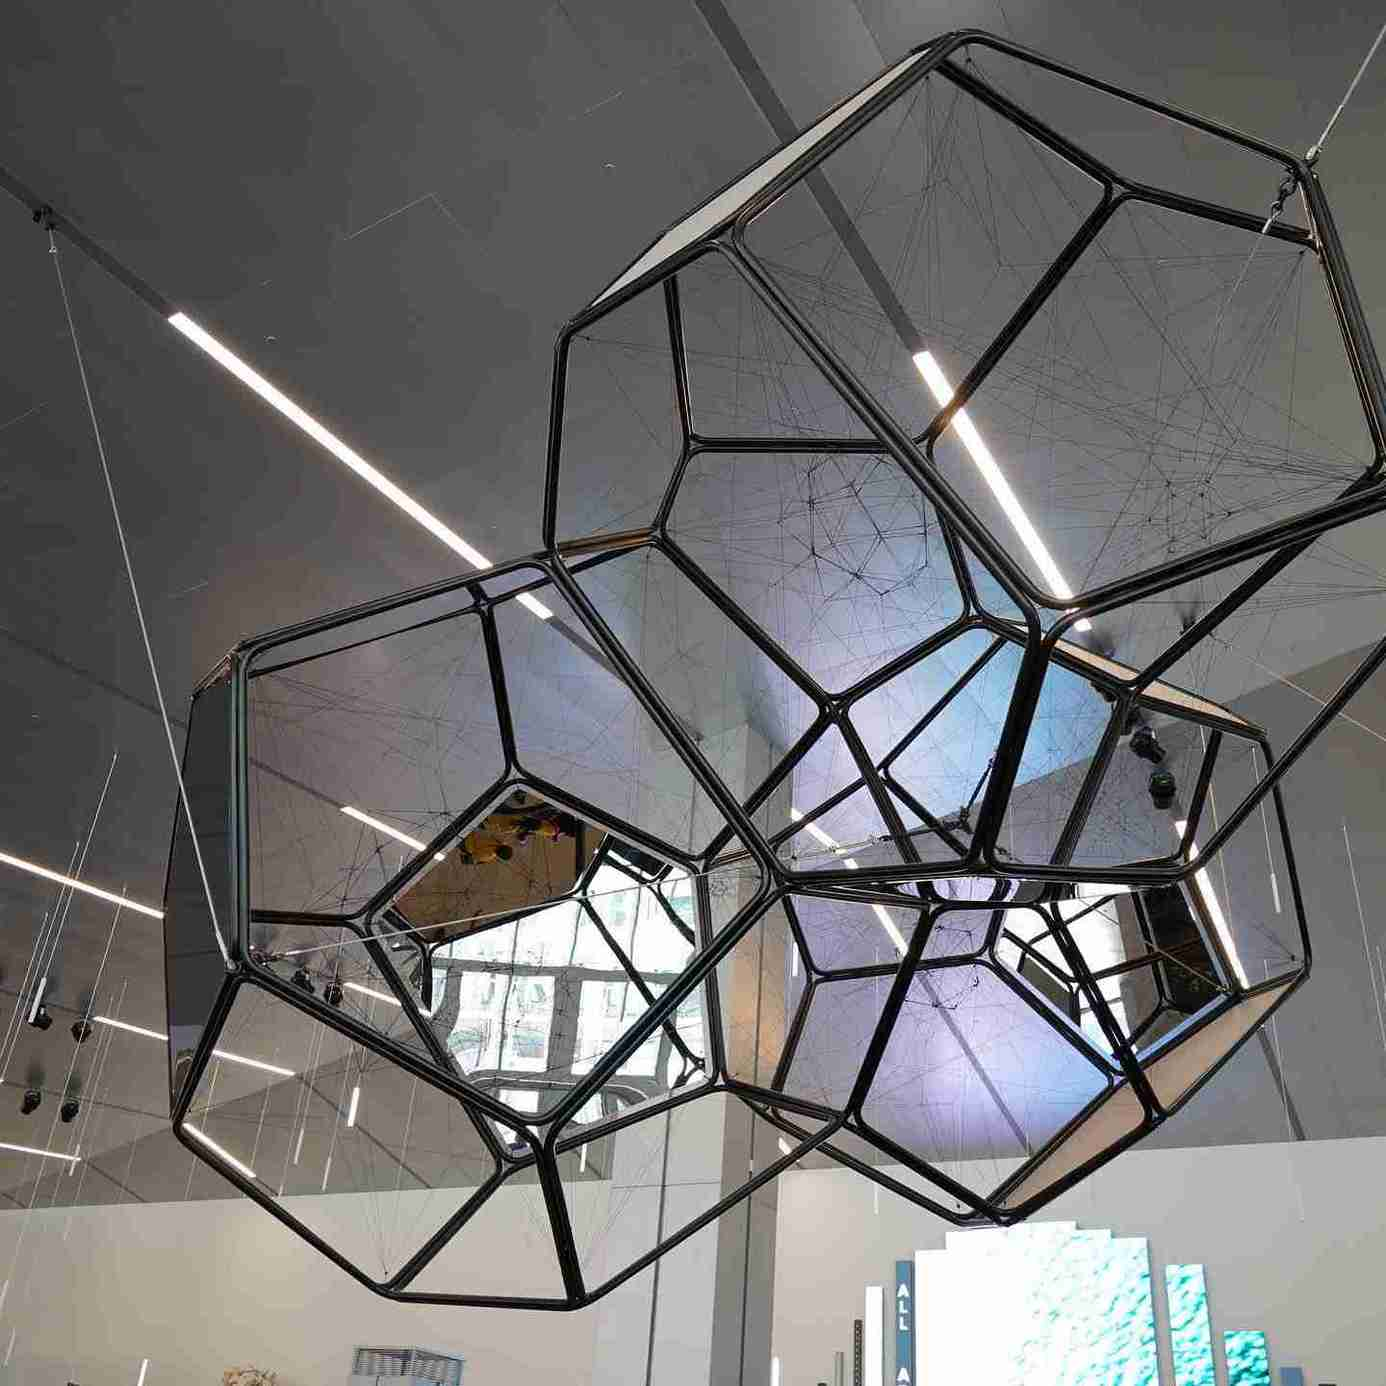 specialty-engineering-art-in-public-places-2